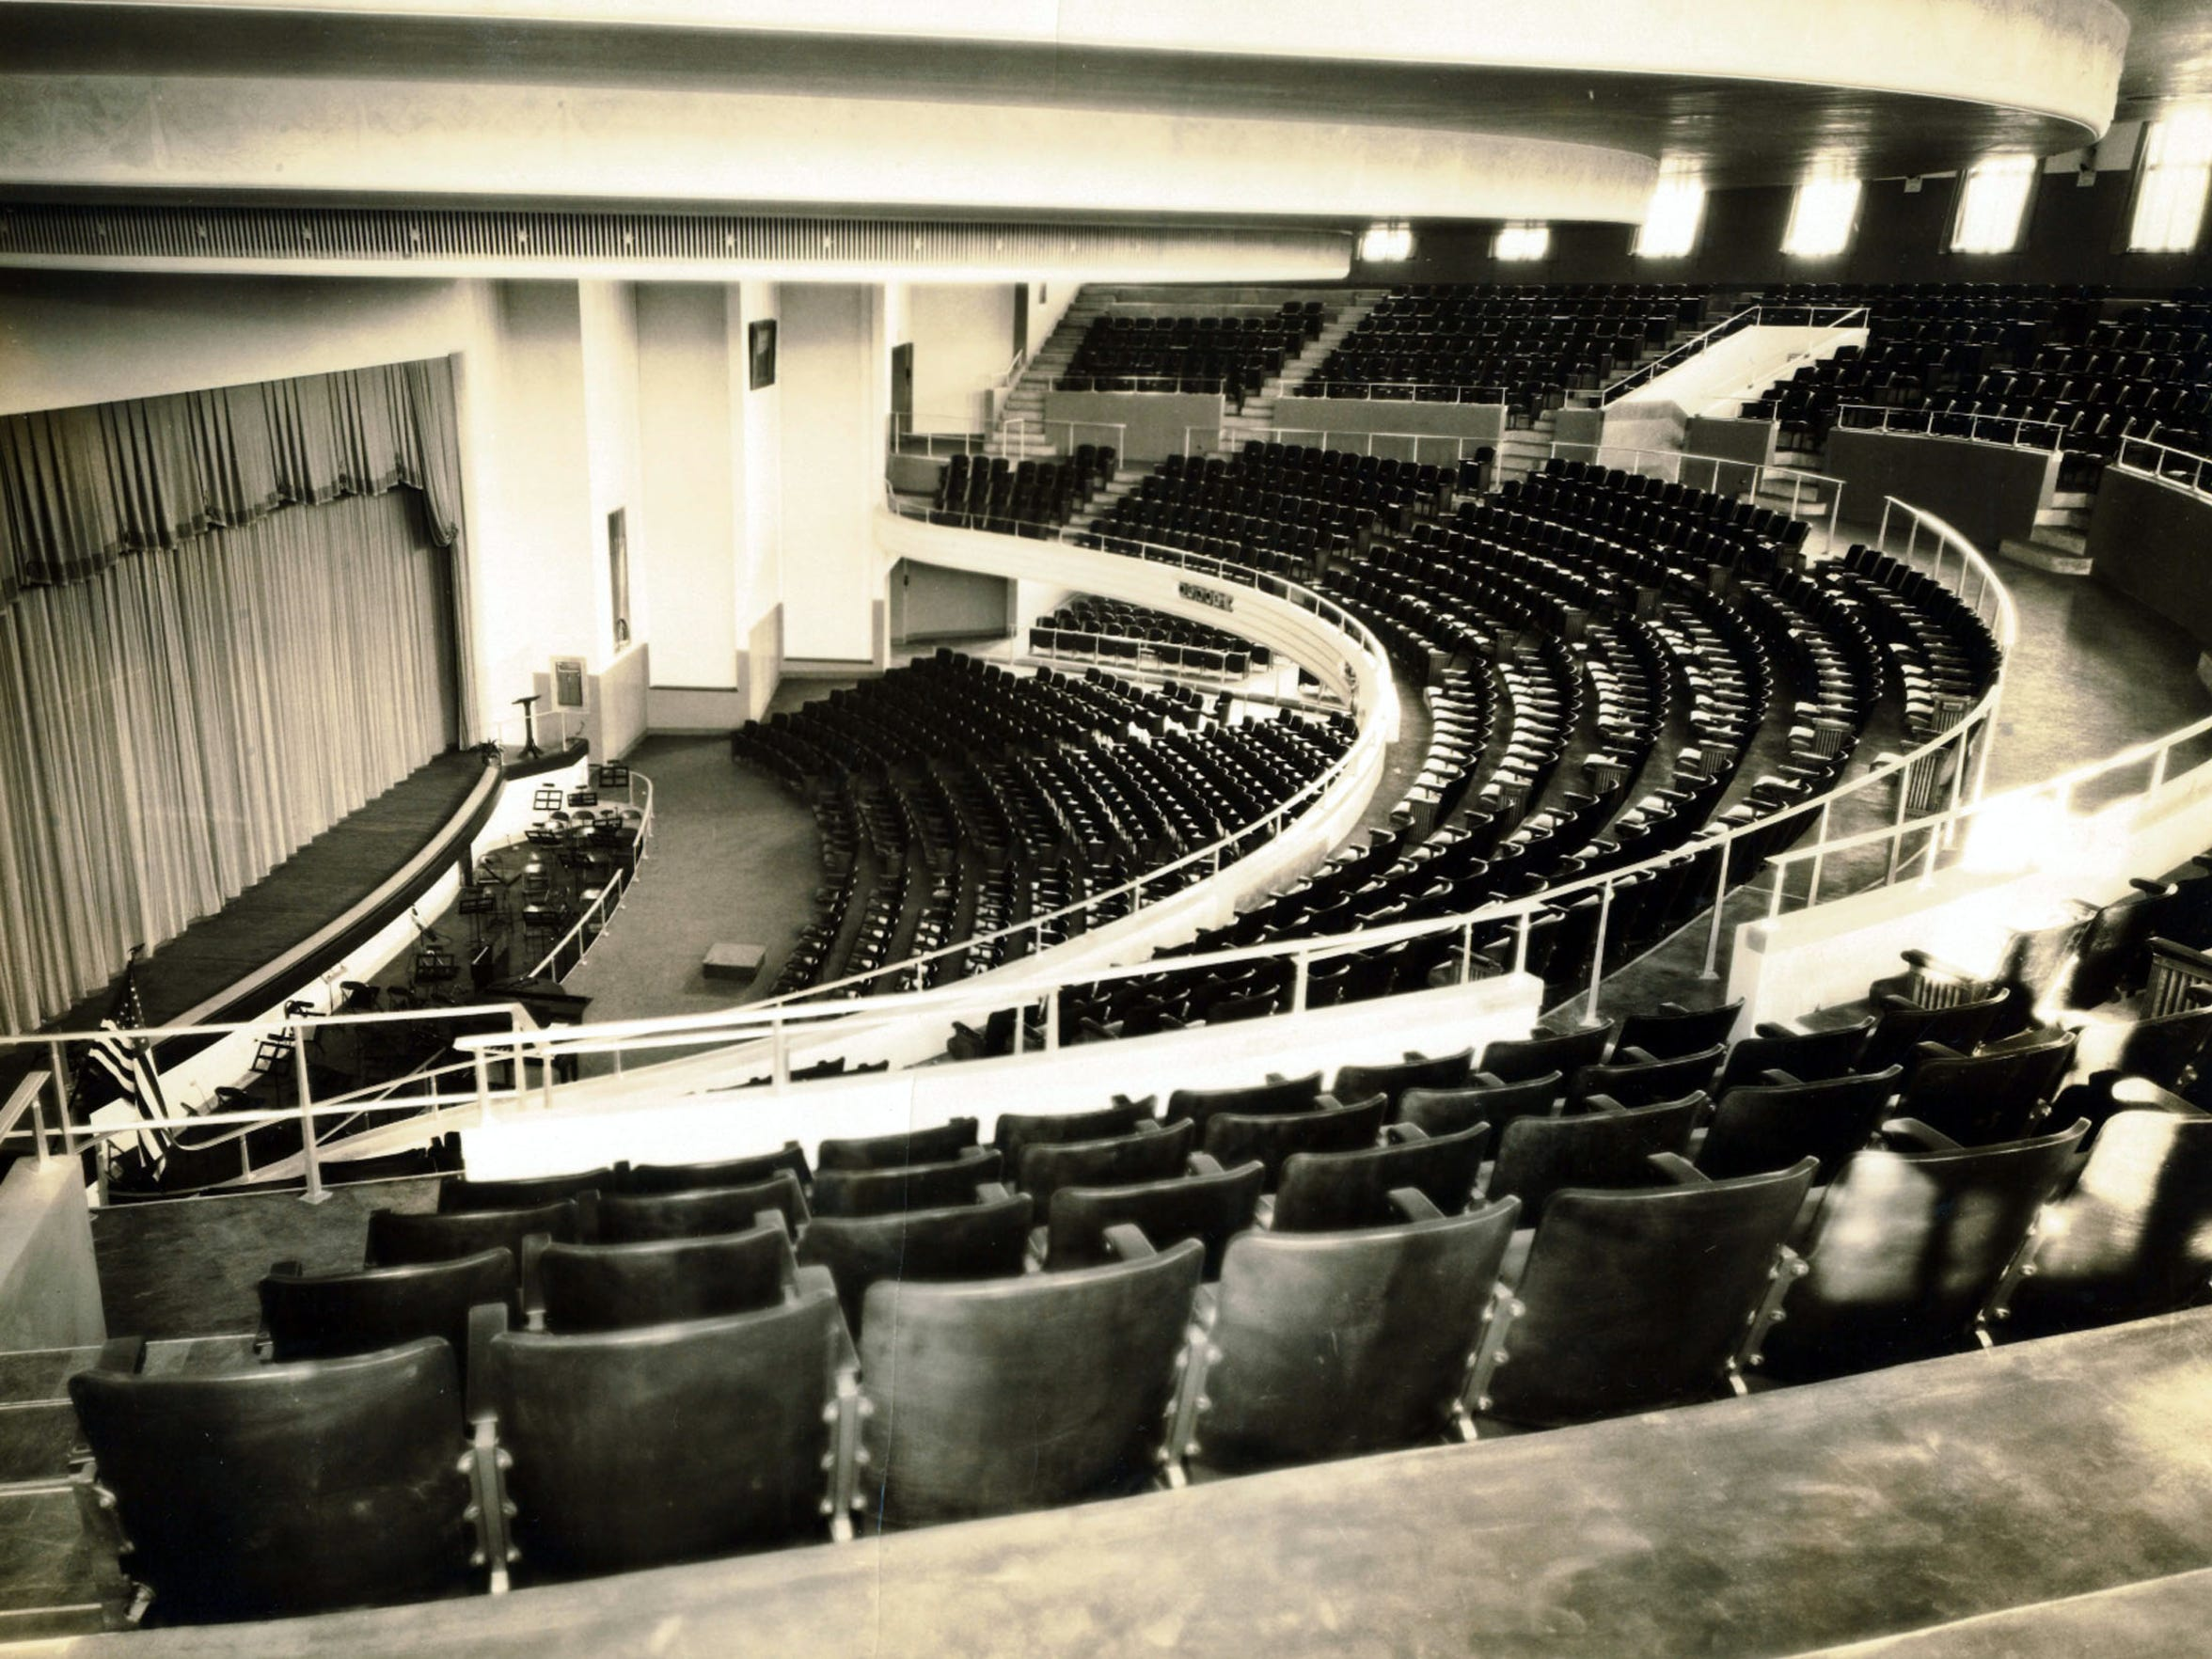 An undated photo from the balcony of the Joseph S.